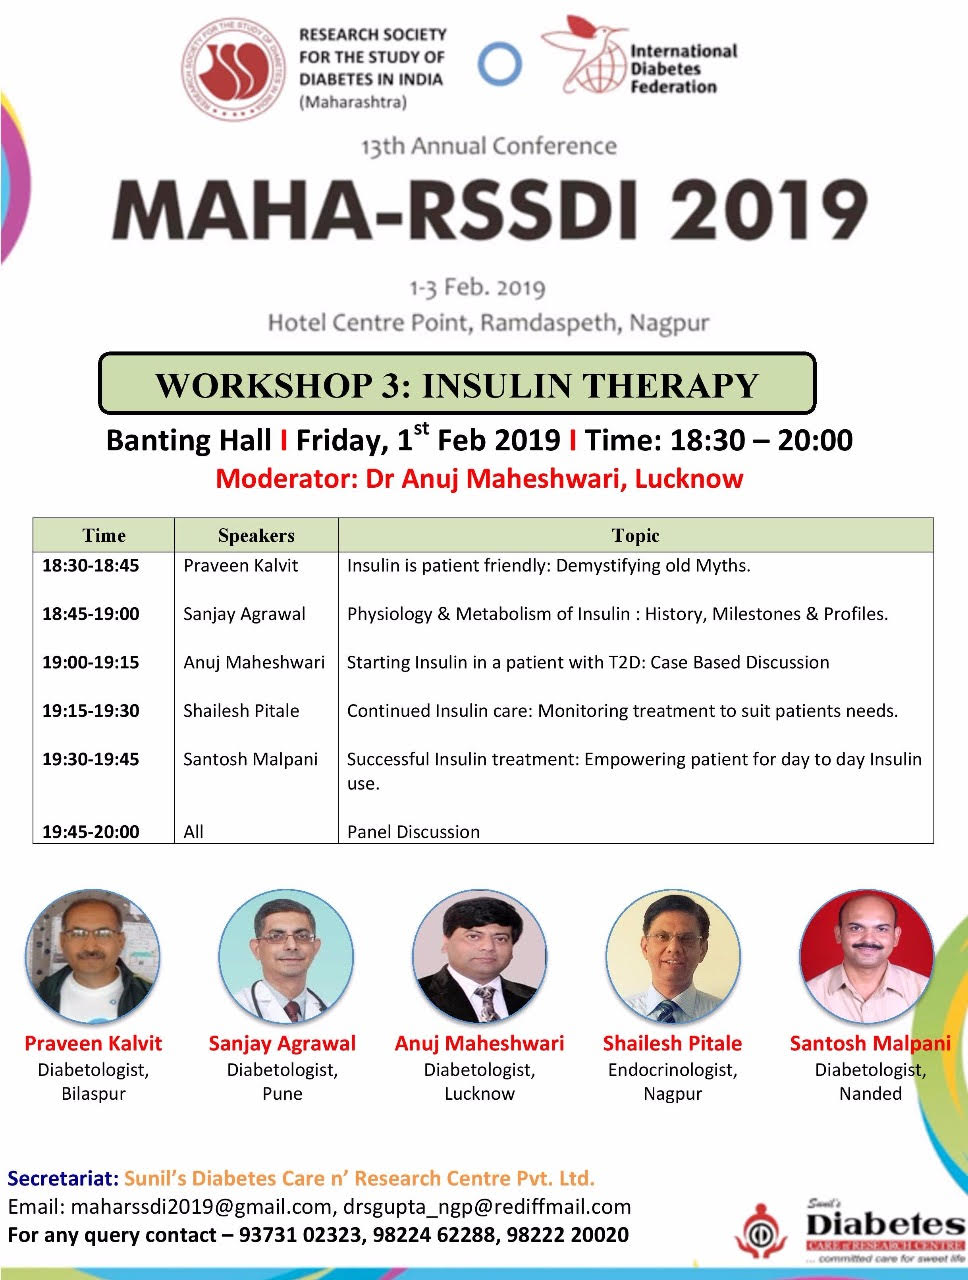 MAHA RSSDI Insulin Therapy